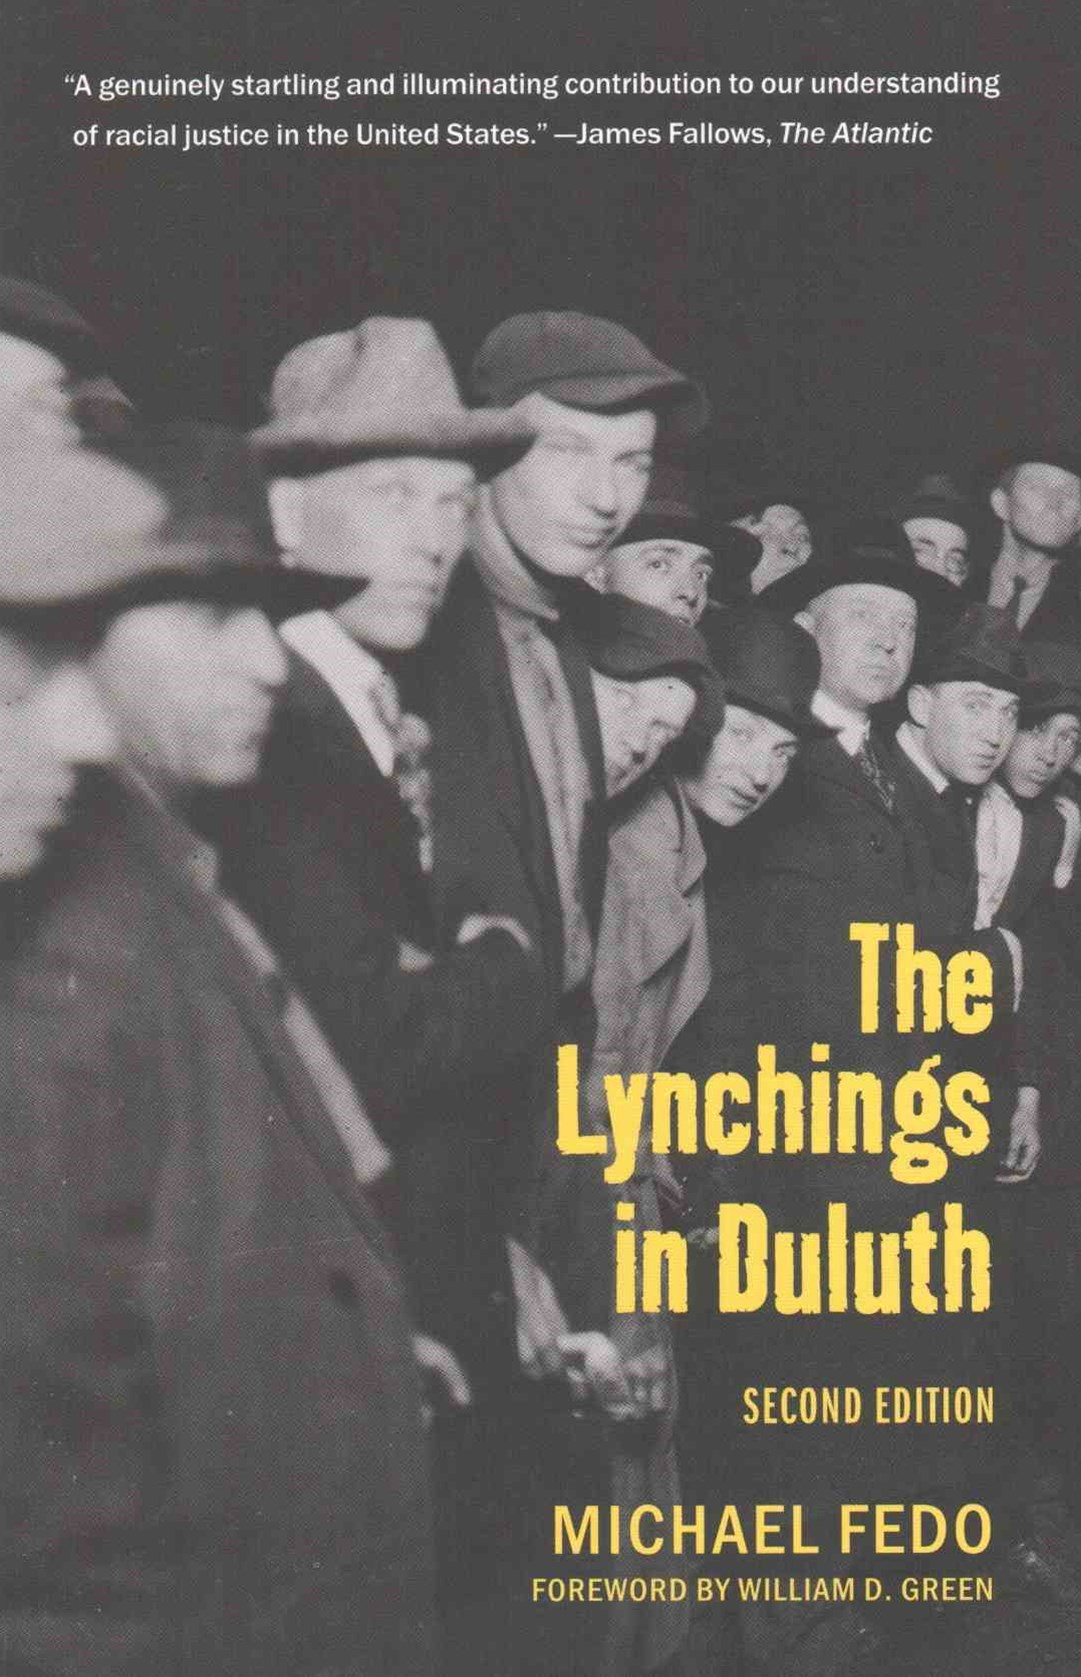 The Lynchings in Duluth